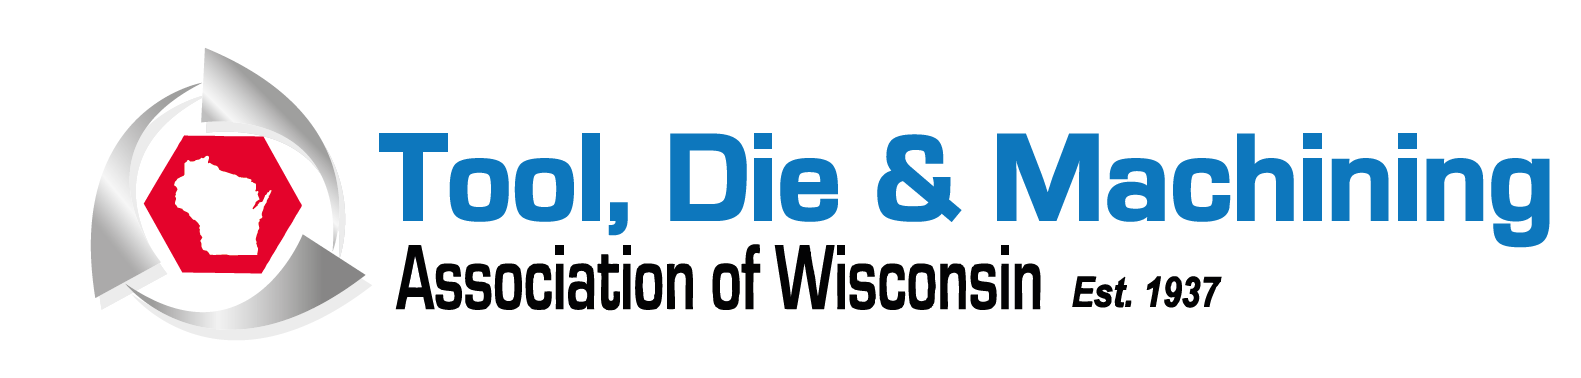 Logo of the Tool Die and Machining Association of Wisconsin